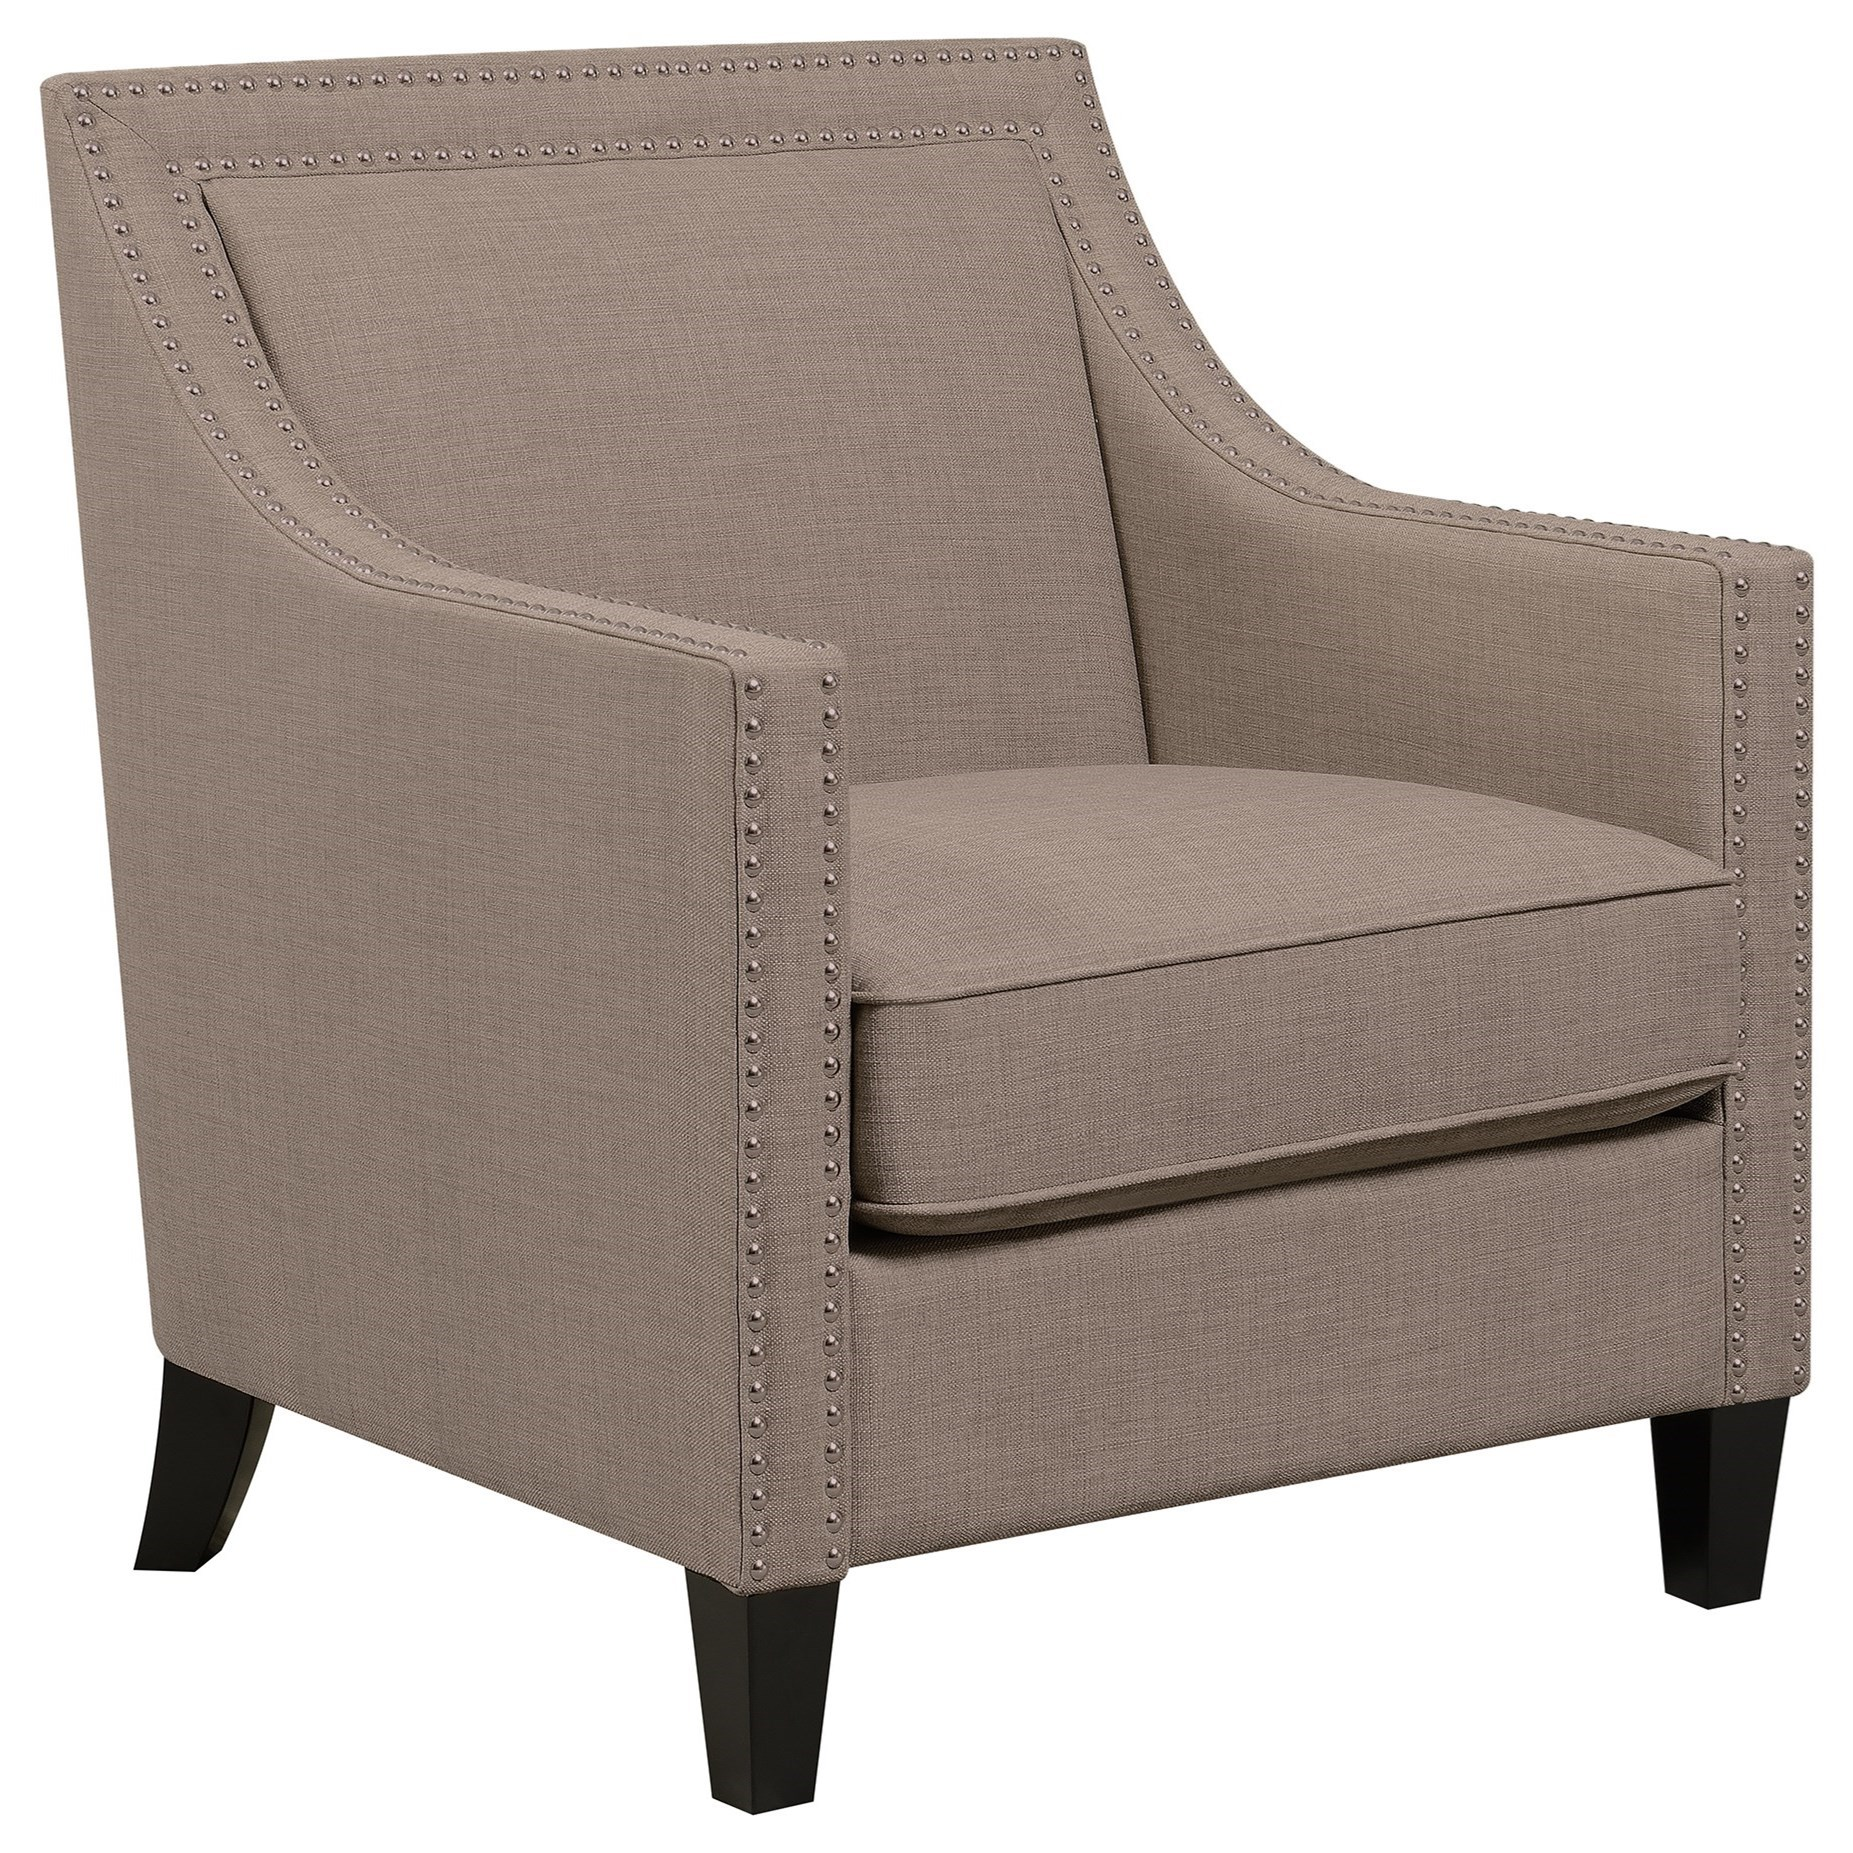 Erica Accent Chair by Elements International at Lindy's Furniture Company